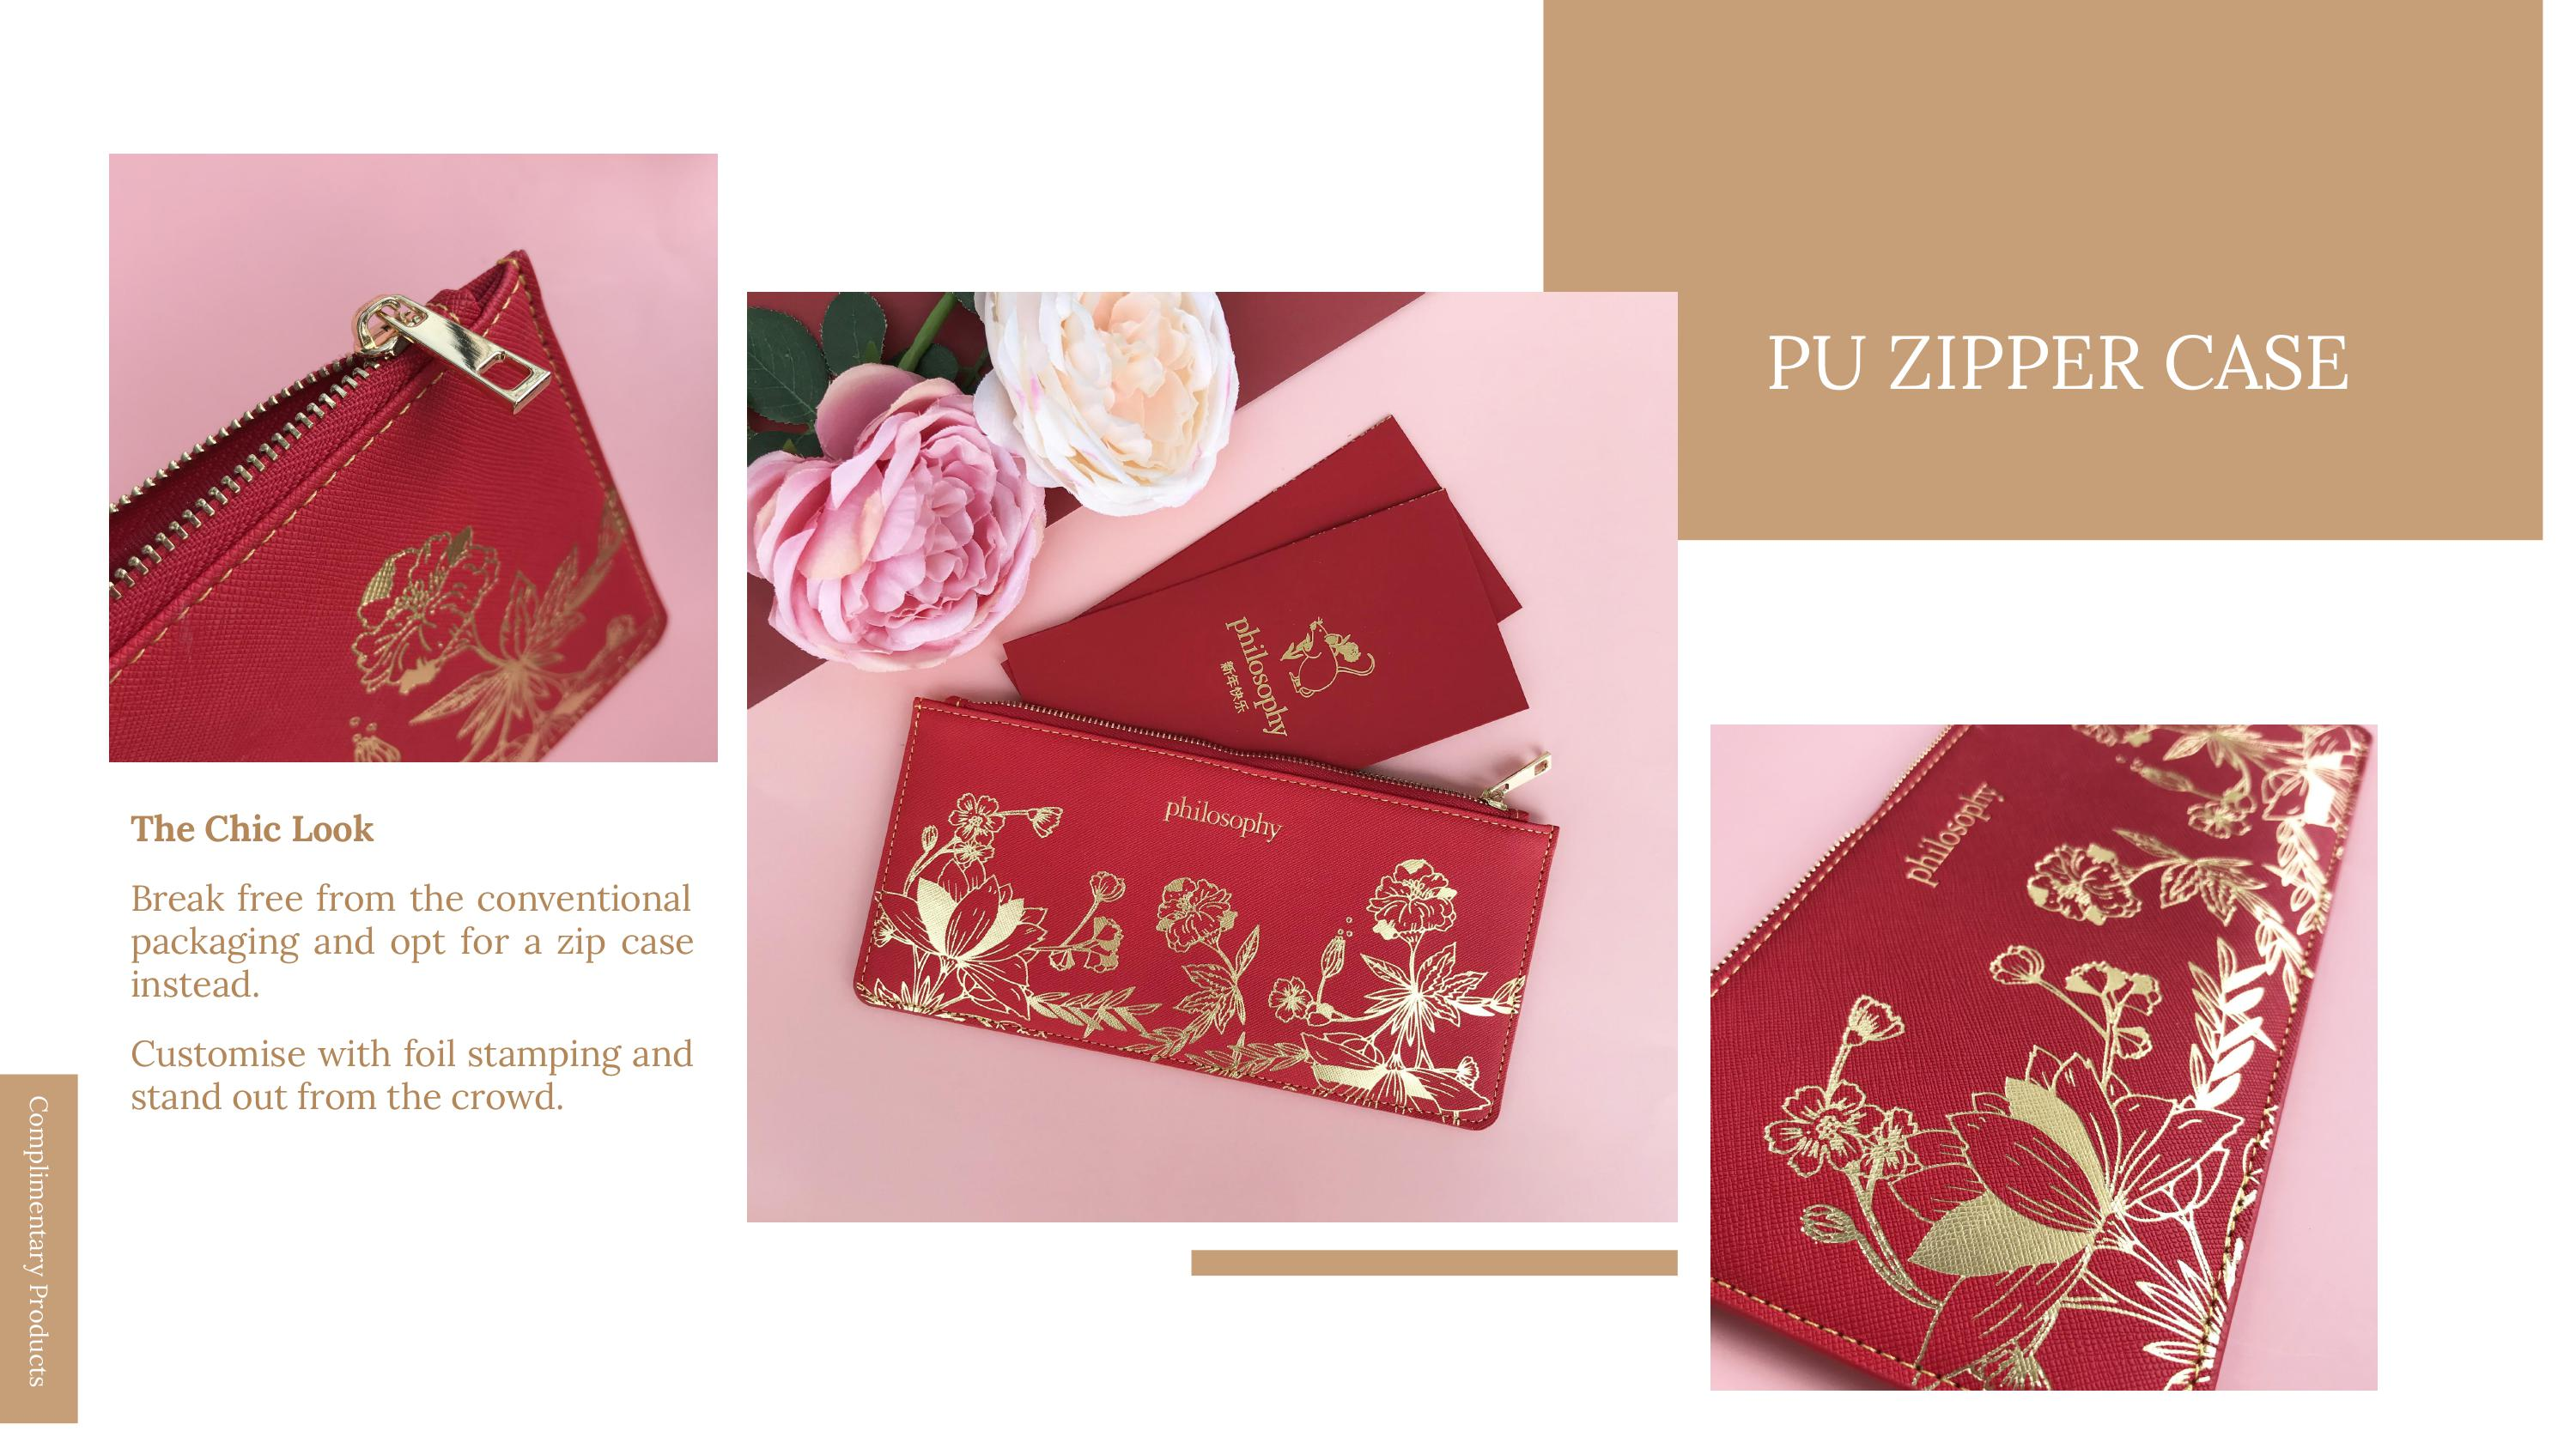 cny pouch with zip